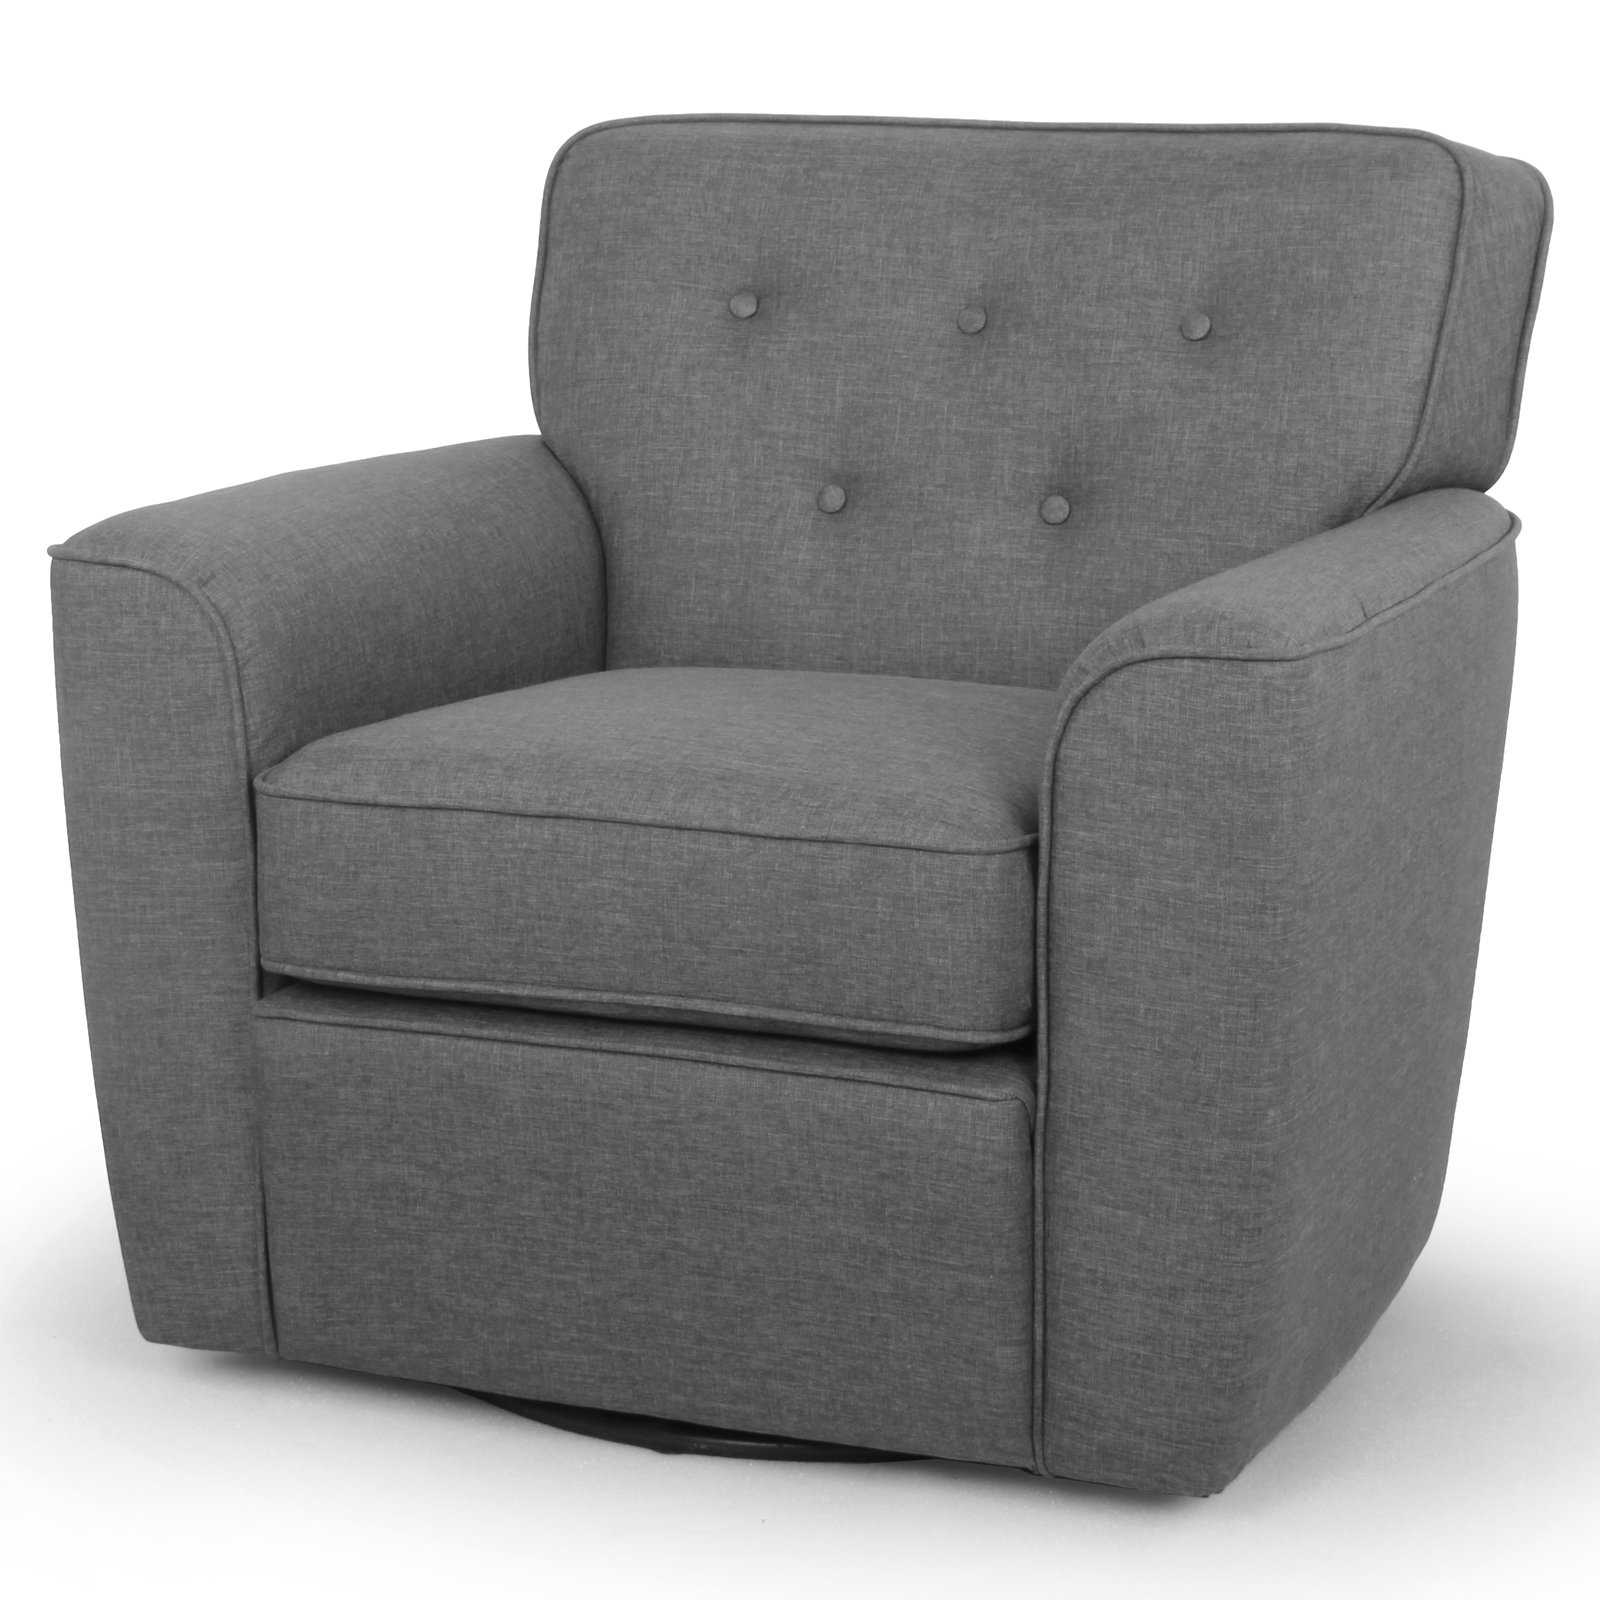 Baxton Studio Canberra Modern Retro Contemporary Gray Fabric Upholstered Button-Tufted Swivel Lounge Chair with Arms by Wholesale Interiors